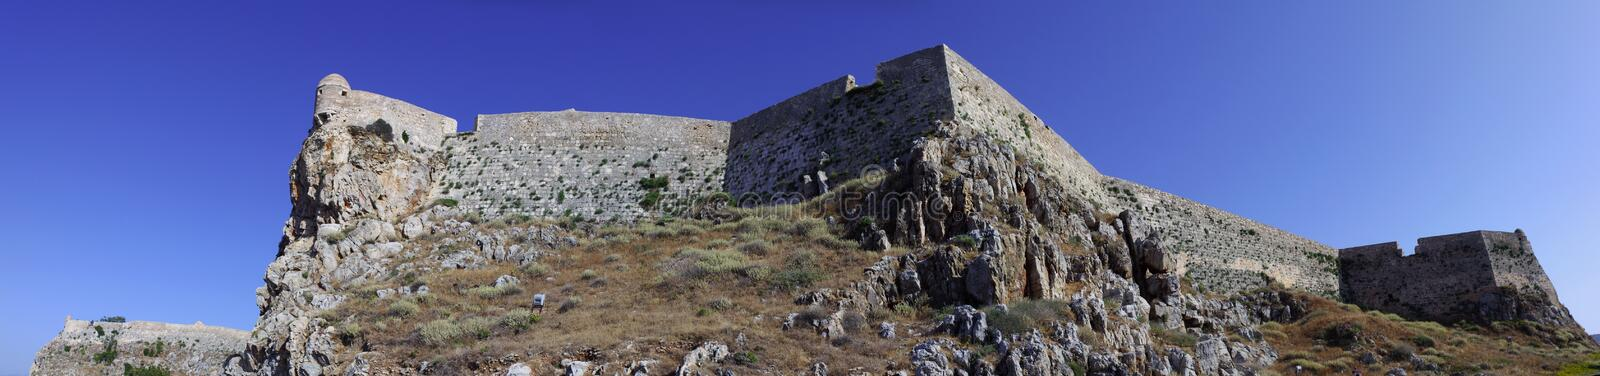 Rethymno Fortezza mure le panorama photographie stock libre de droits